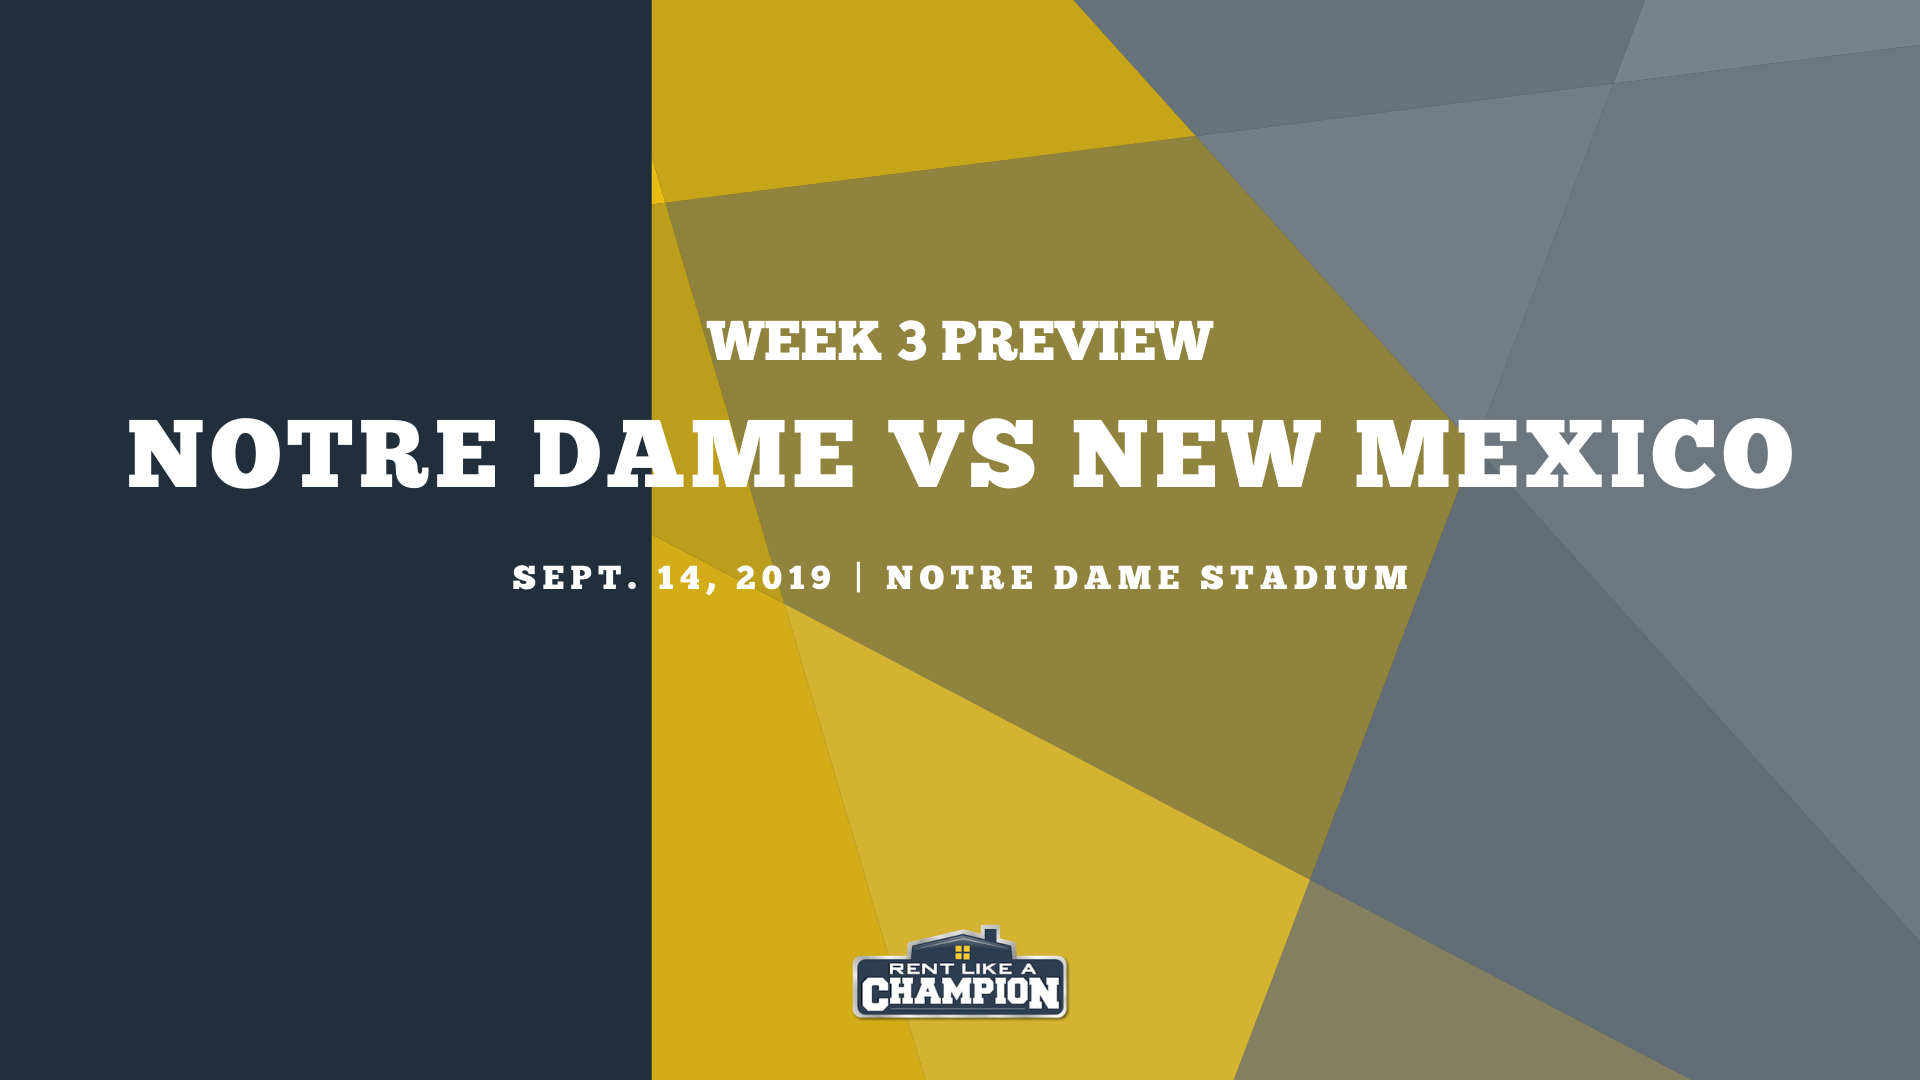 Notre Dame Game Preview Template-1